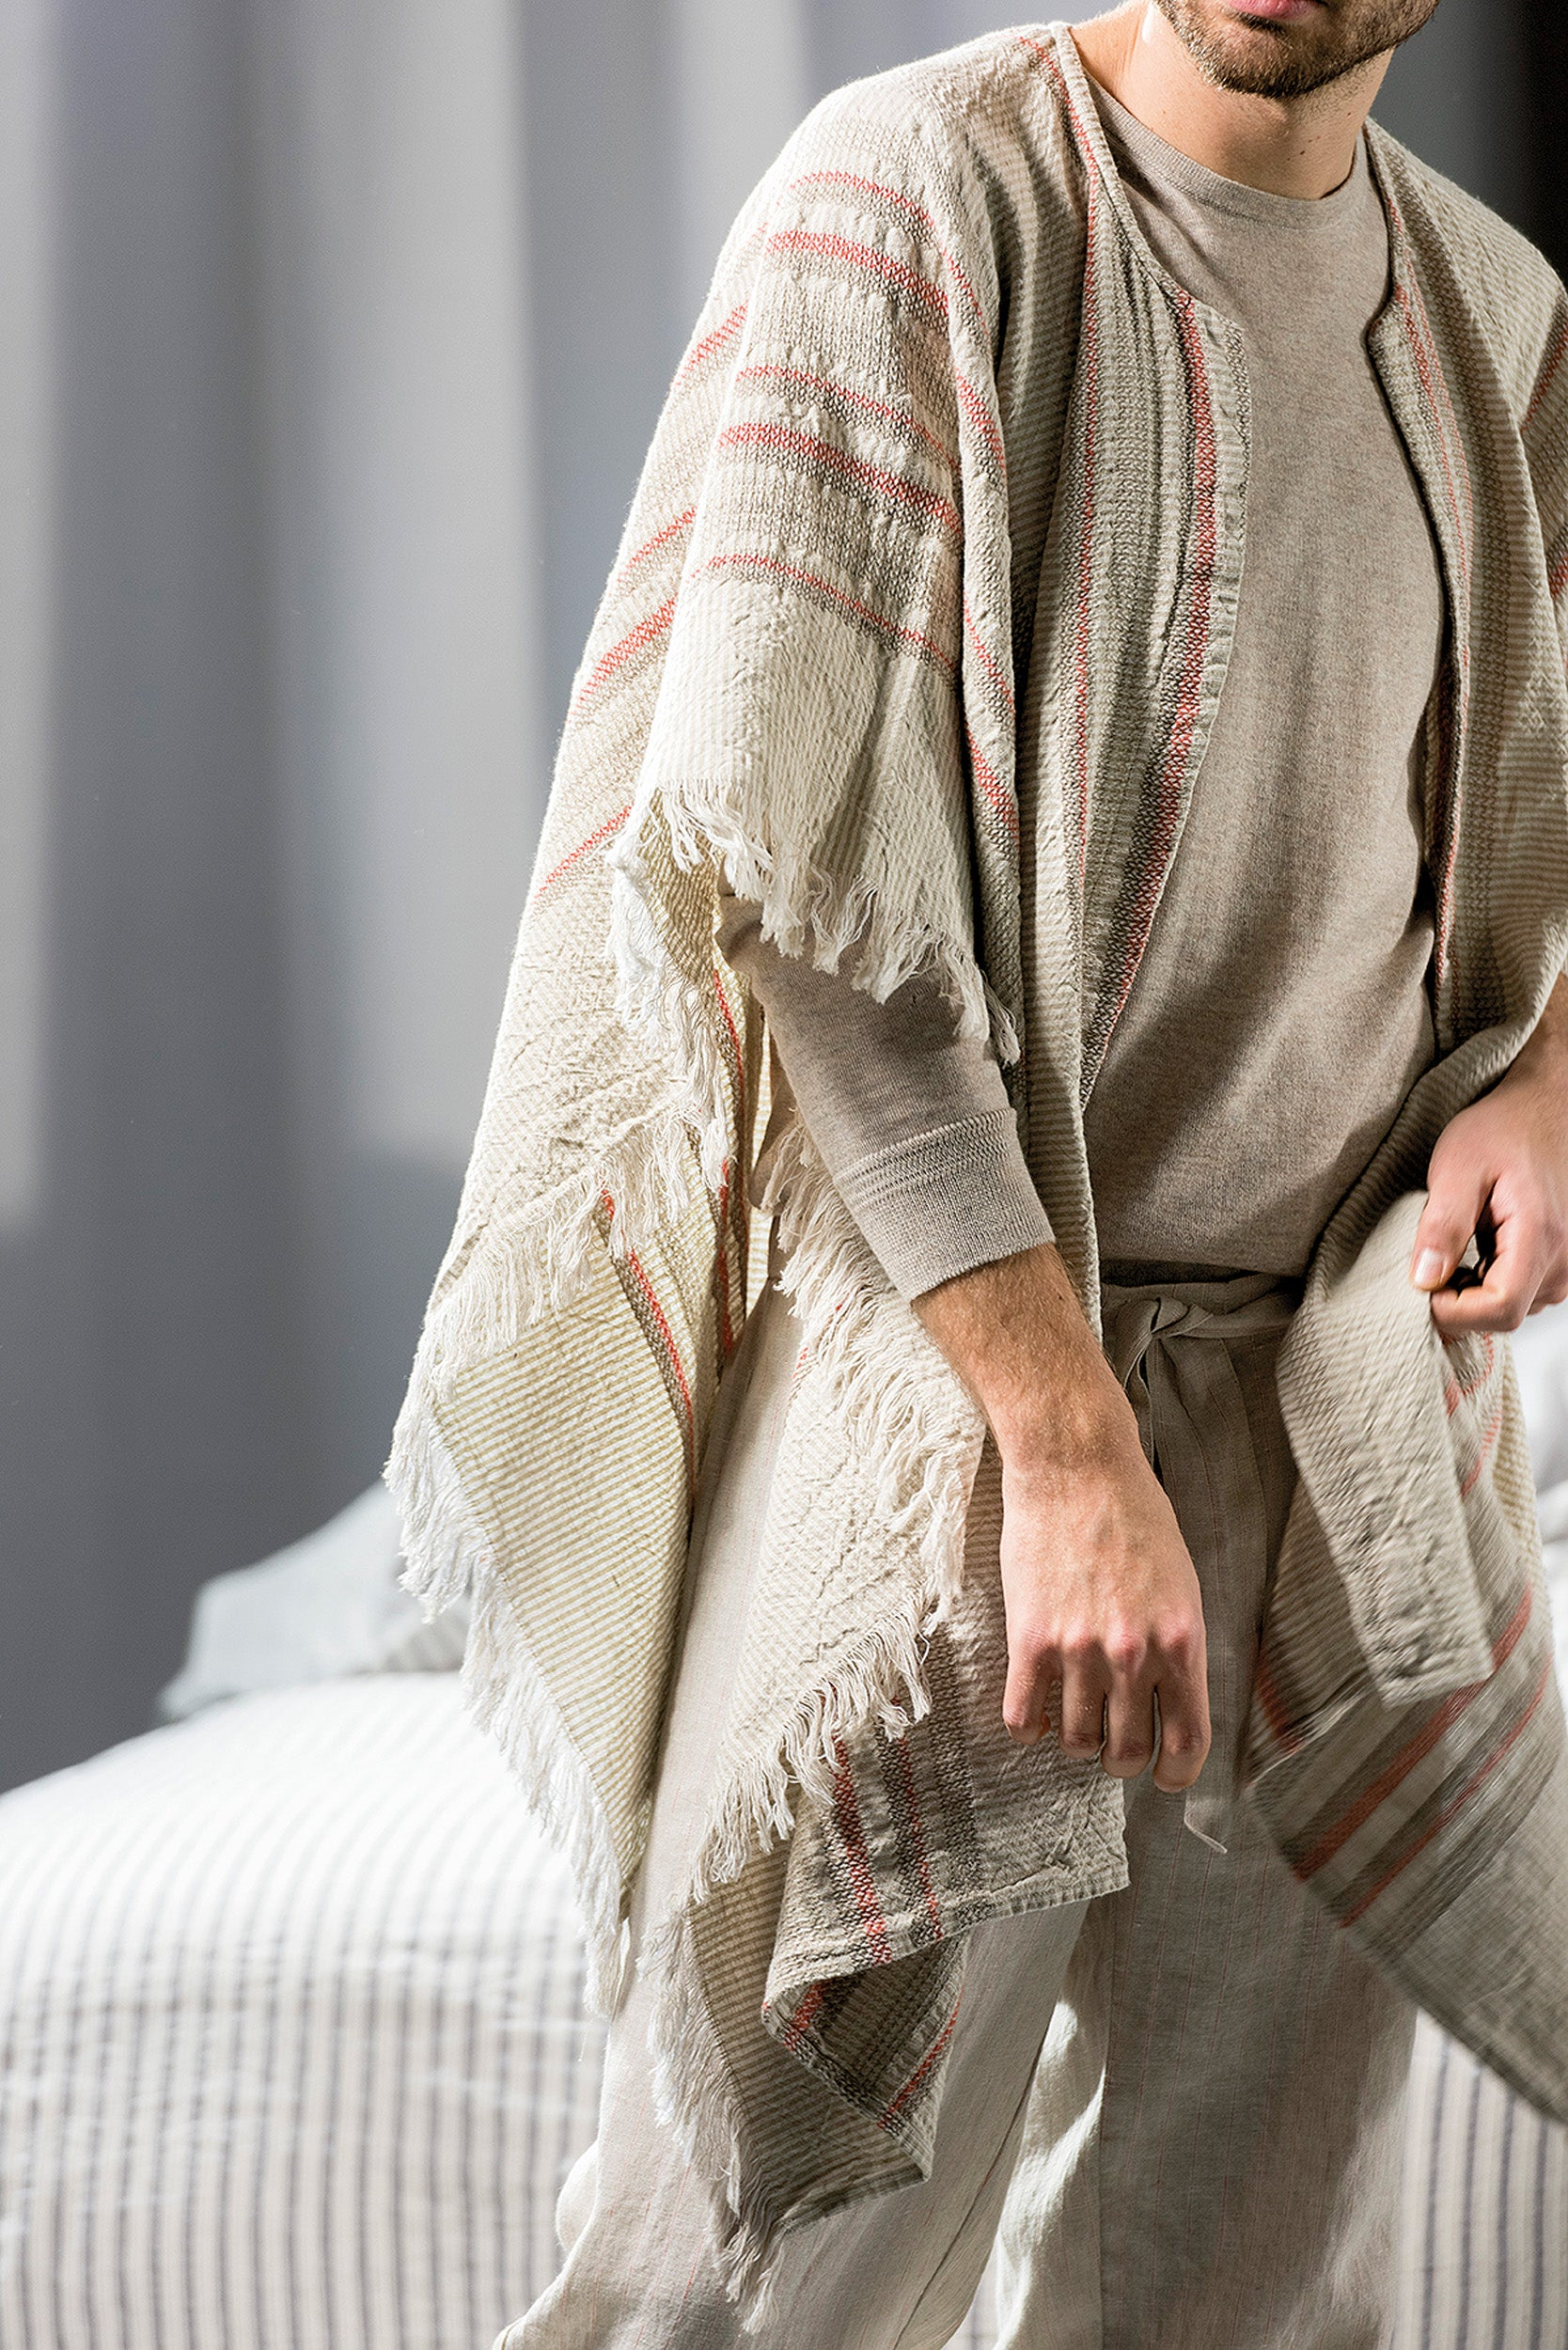 PONCHO 'ARGENTINA' - Robes & Sleepwear - SCAPA HOME - SCAPA HOME OFFICIAL